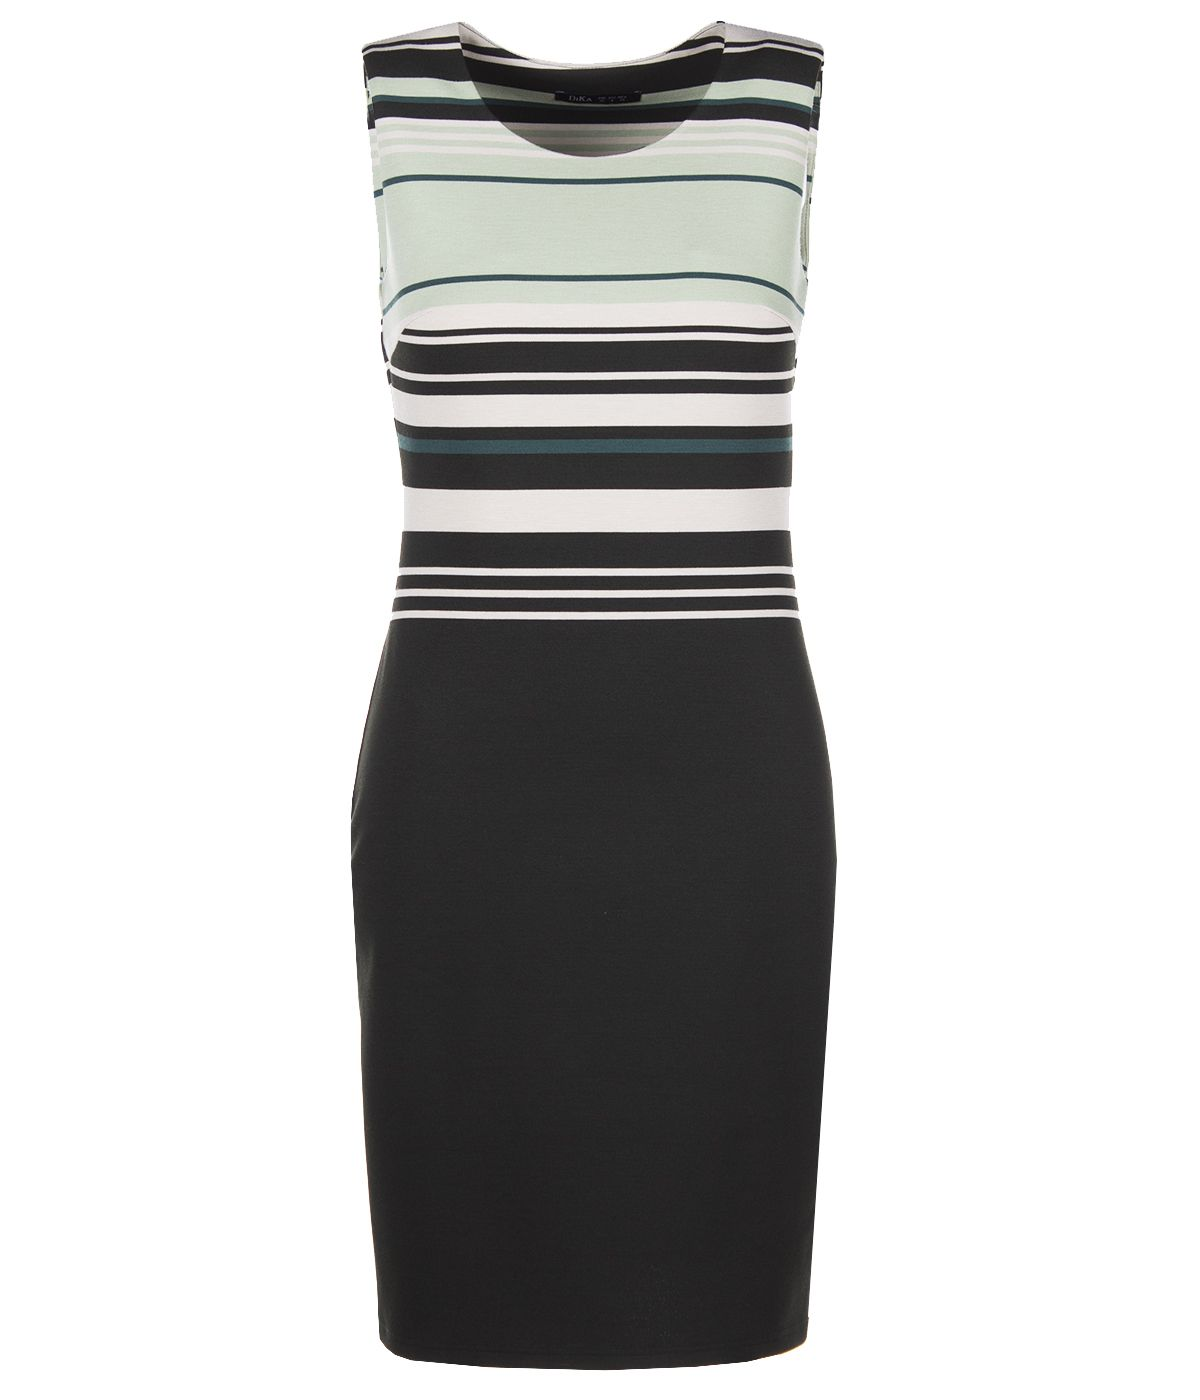 PENCIL SLEEVELESS DRESS WITH STRIPES AND ROUND NECKLINE 0